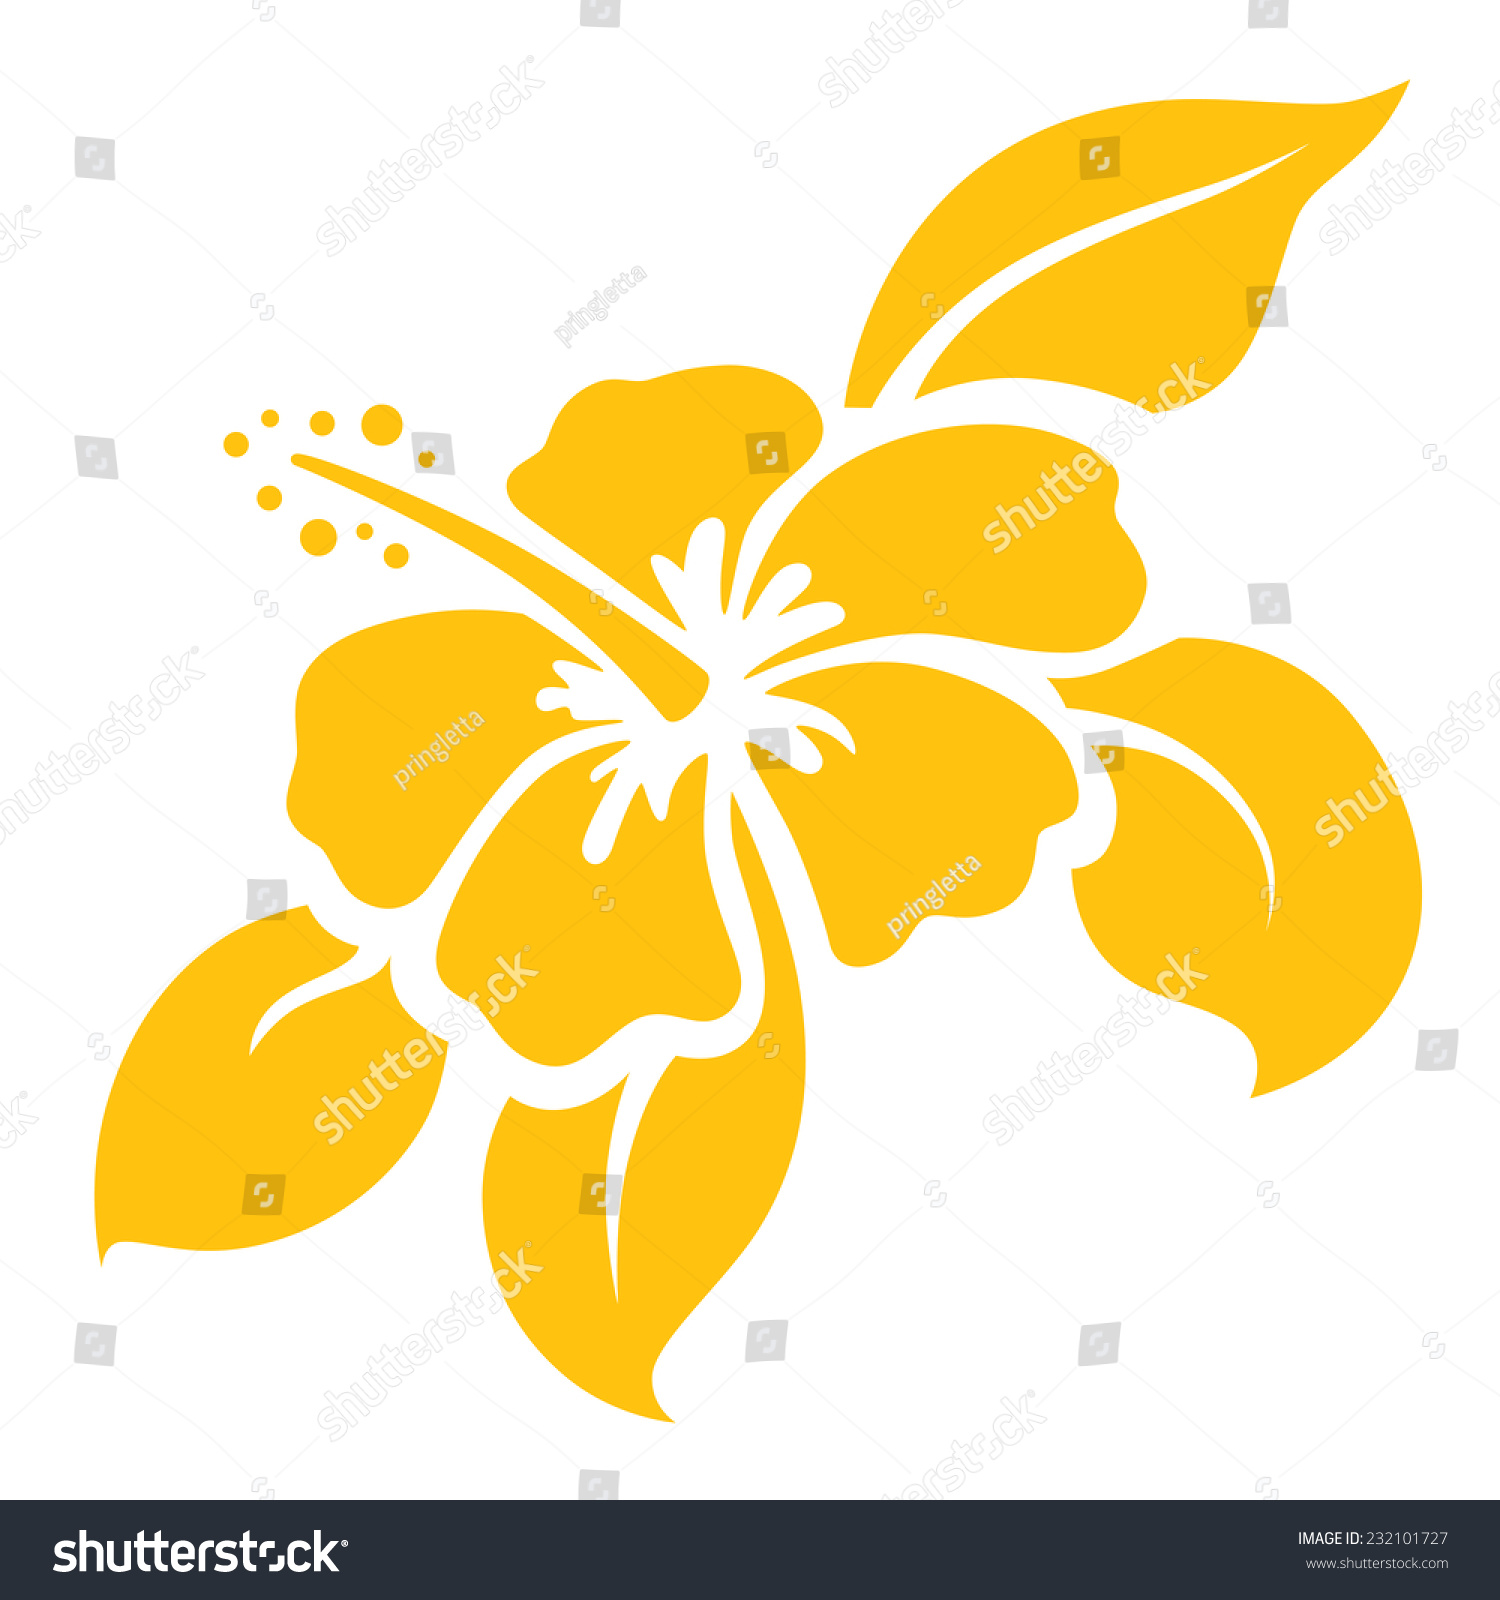 Hibiscus icon stencil gradient free easy stock vector royalty free hibiscus icon or stencil gradient free and easy to change color izmirmasajfo